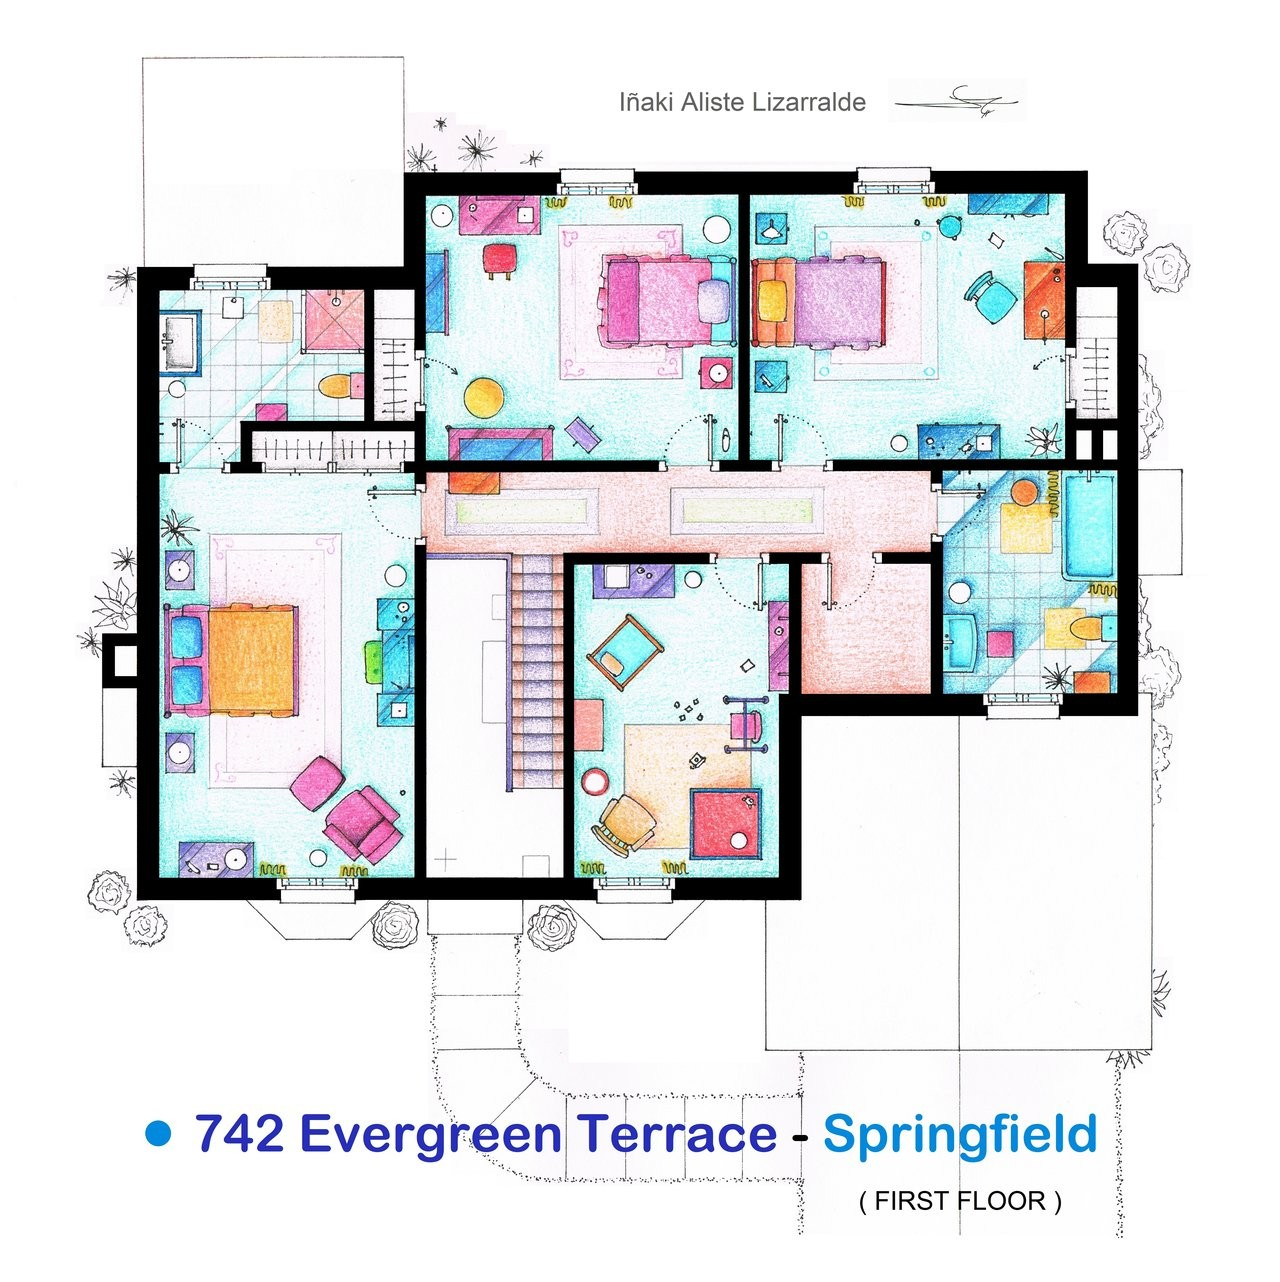 From Friends To Frasier Famous TV Shows Rendered In Plan - House designs floor plans